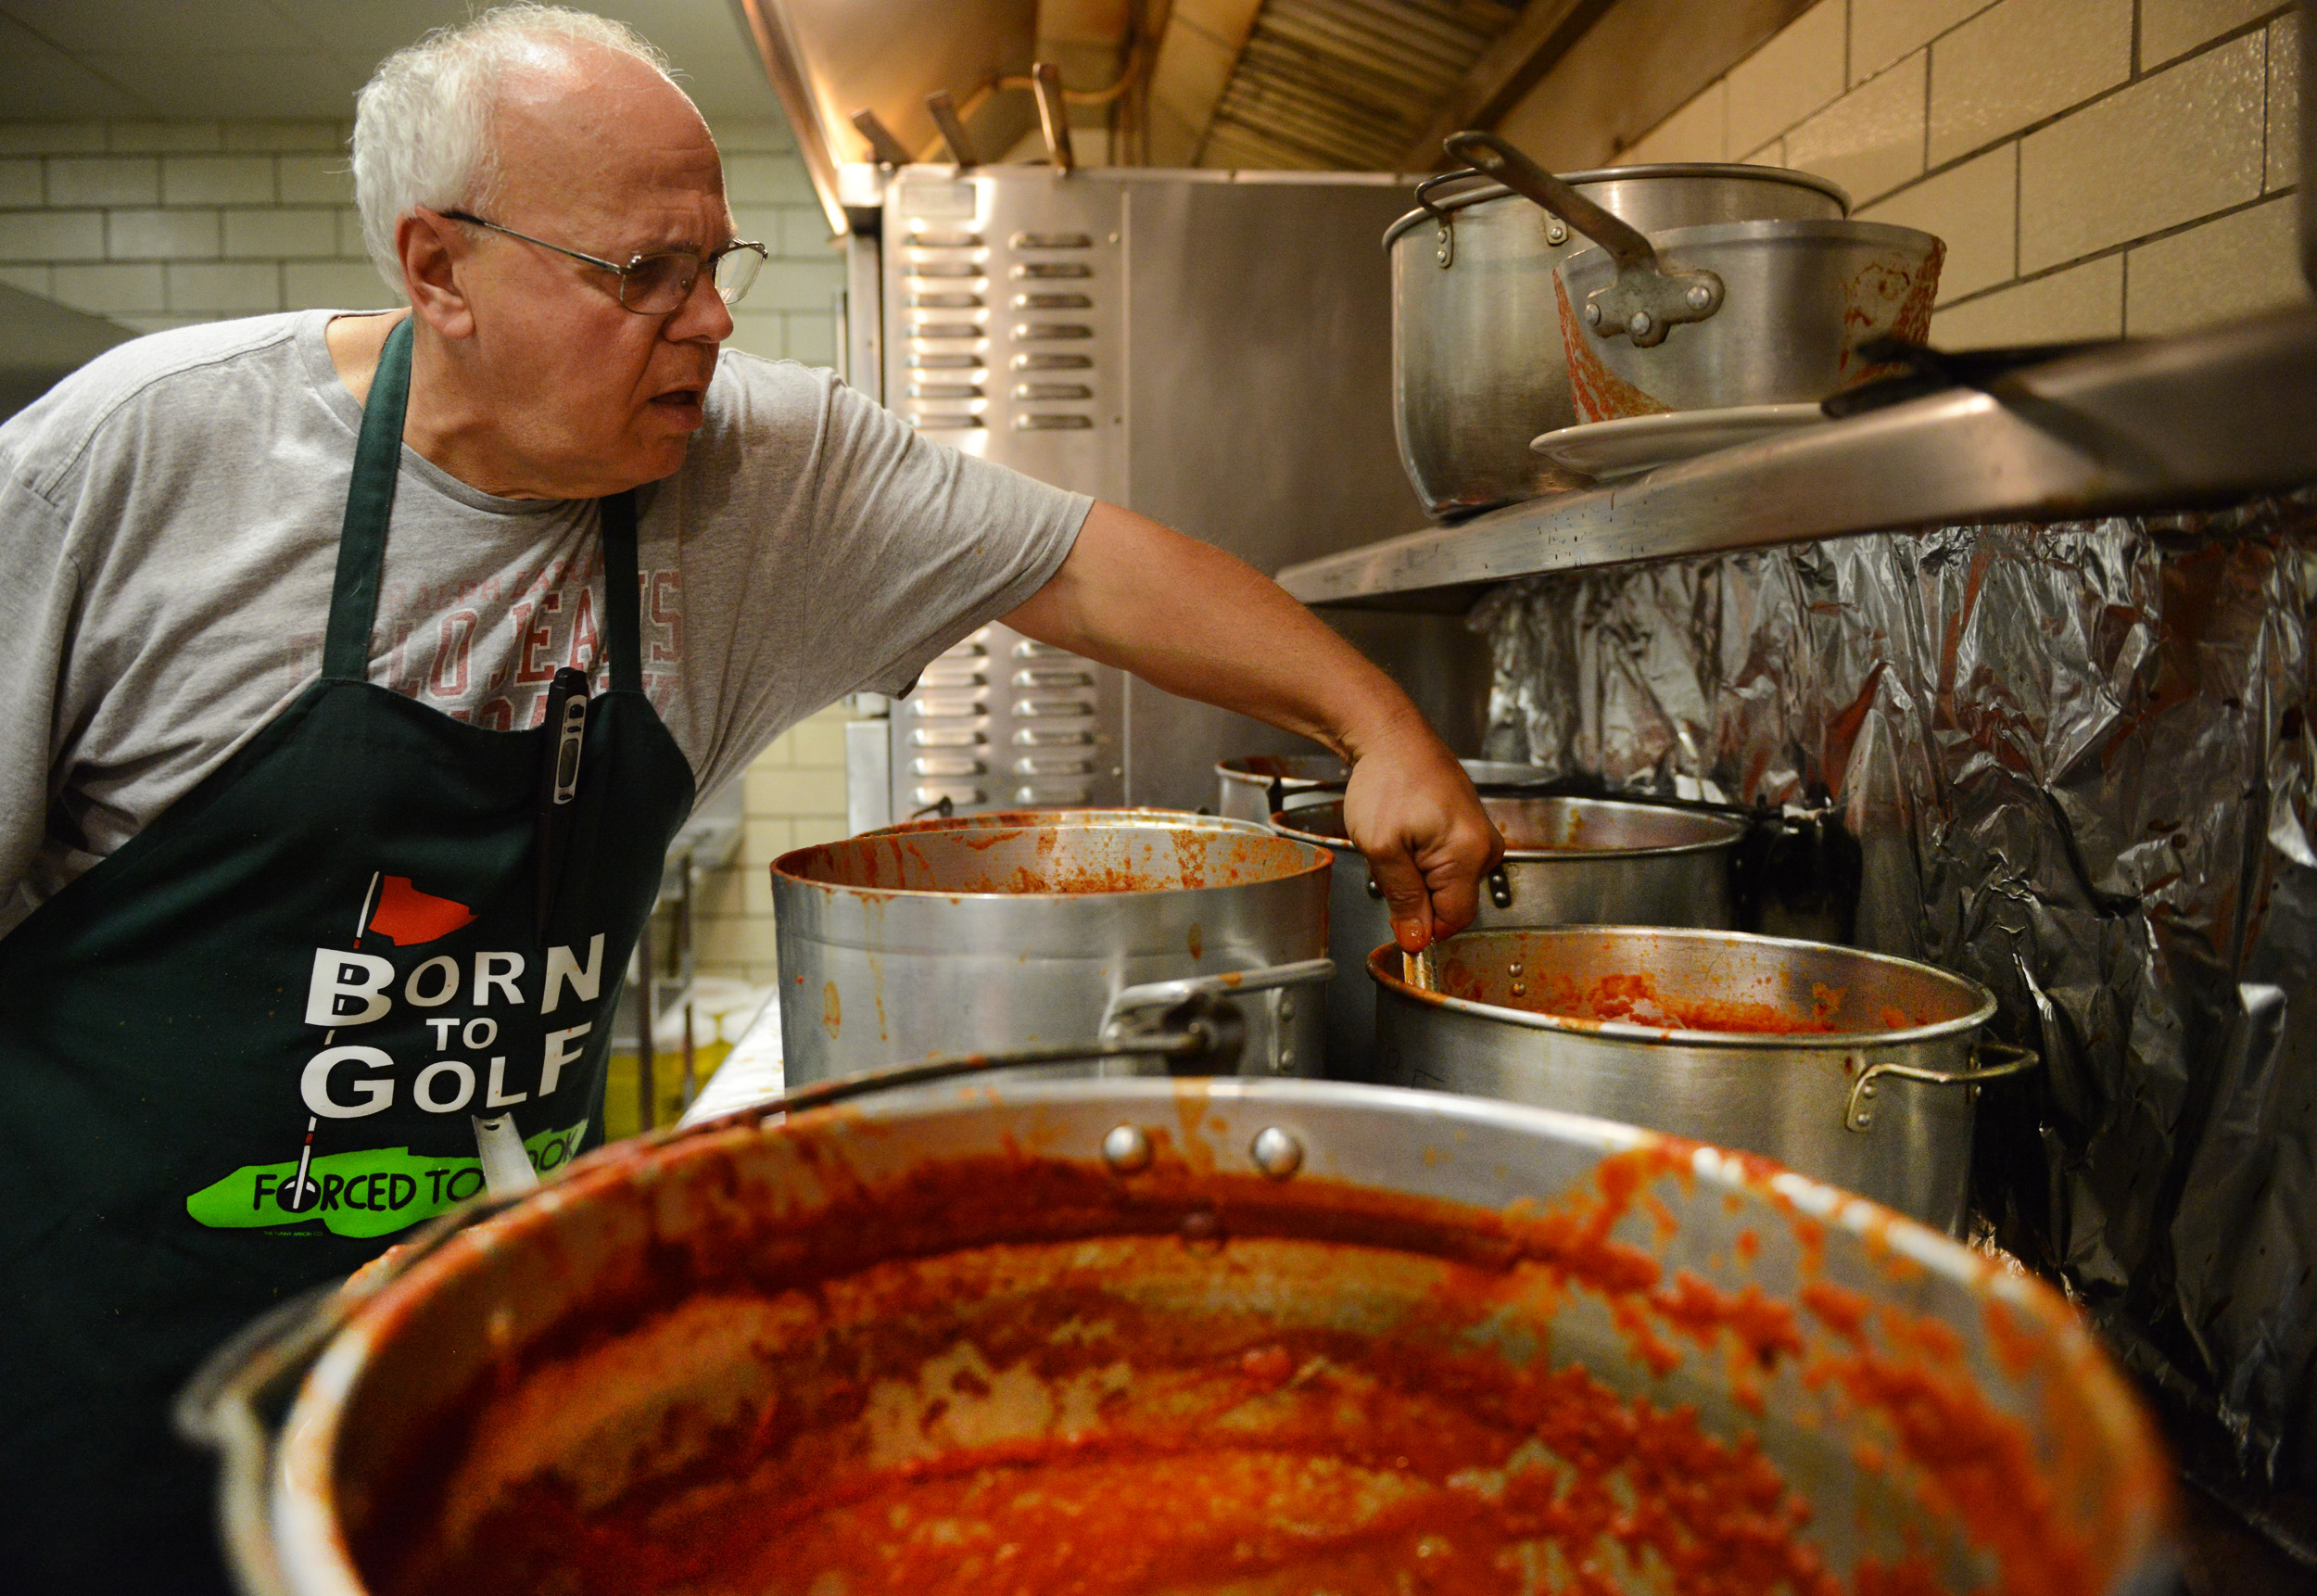 Lou Lazzaro stirs tomato sauce for Italian meals for Festa Italiana at Mount Saint Peter Parish in New Kensington on Thursday, July 30, 2015.